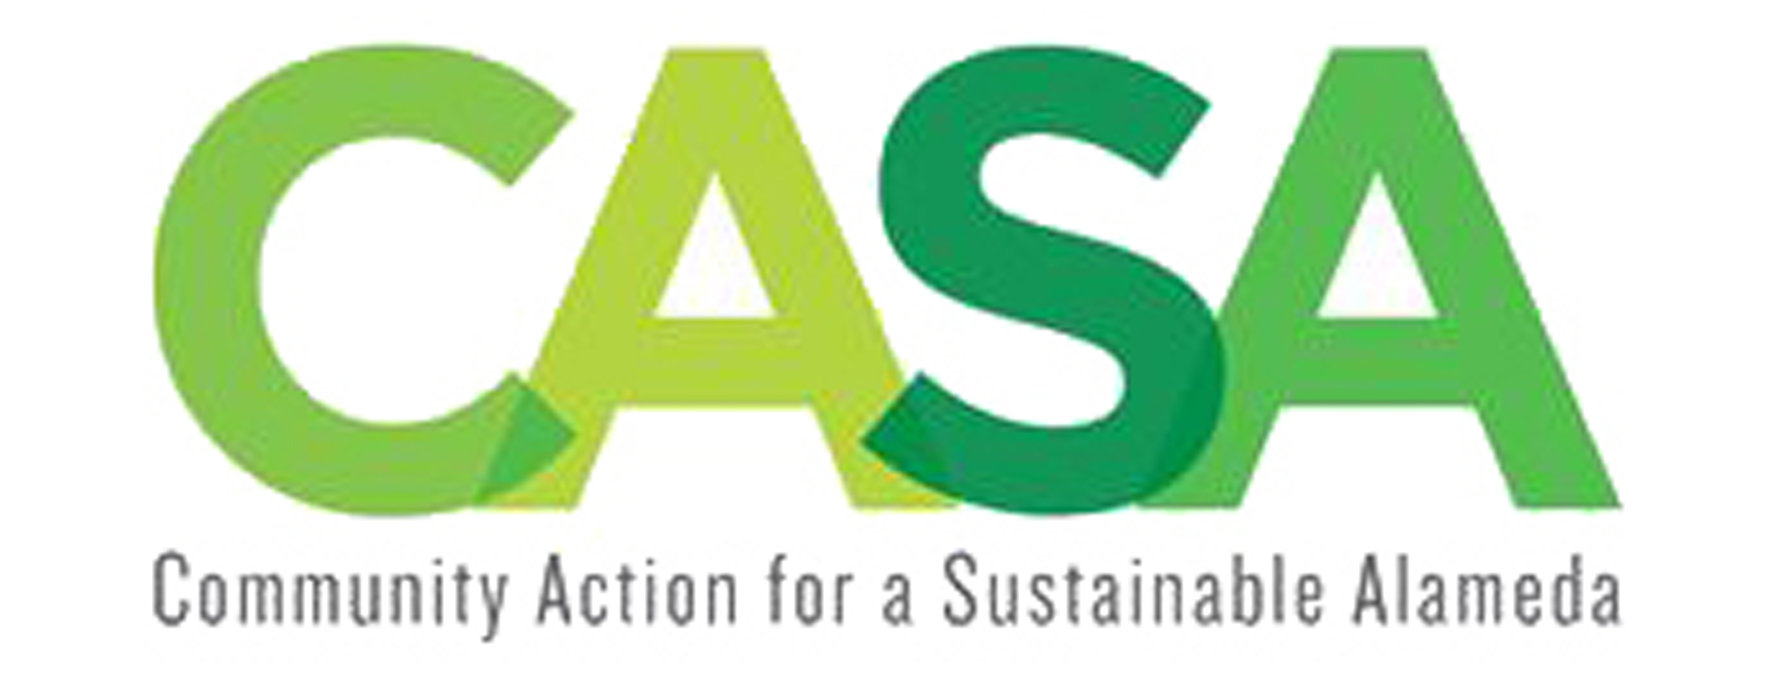 Community Action for a Sustainable Alameda (CASA)